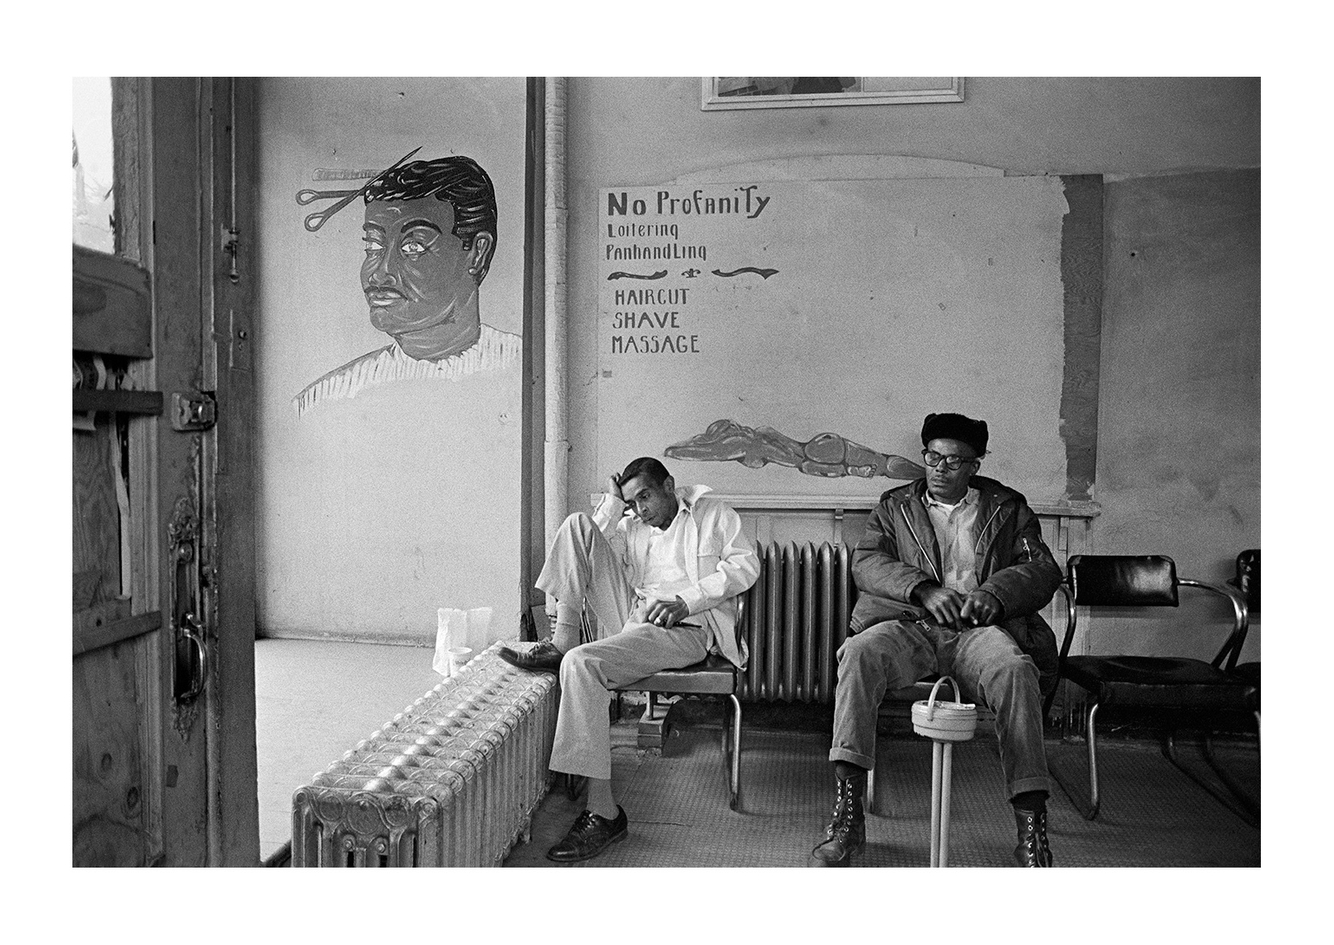 Paul's Barbershop, Waiting for a Customer, 2611 John R, Detroit 1972